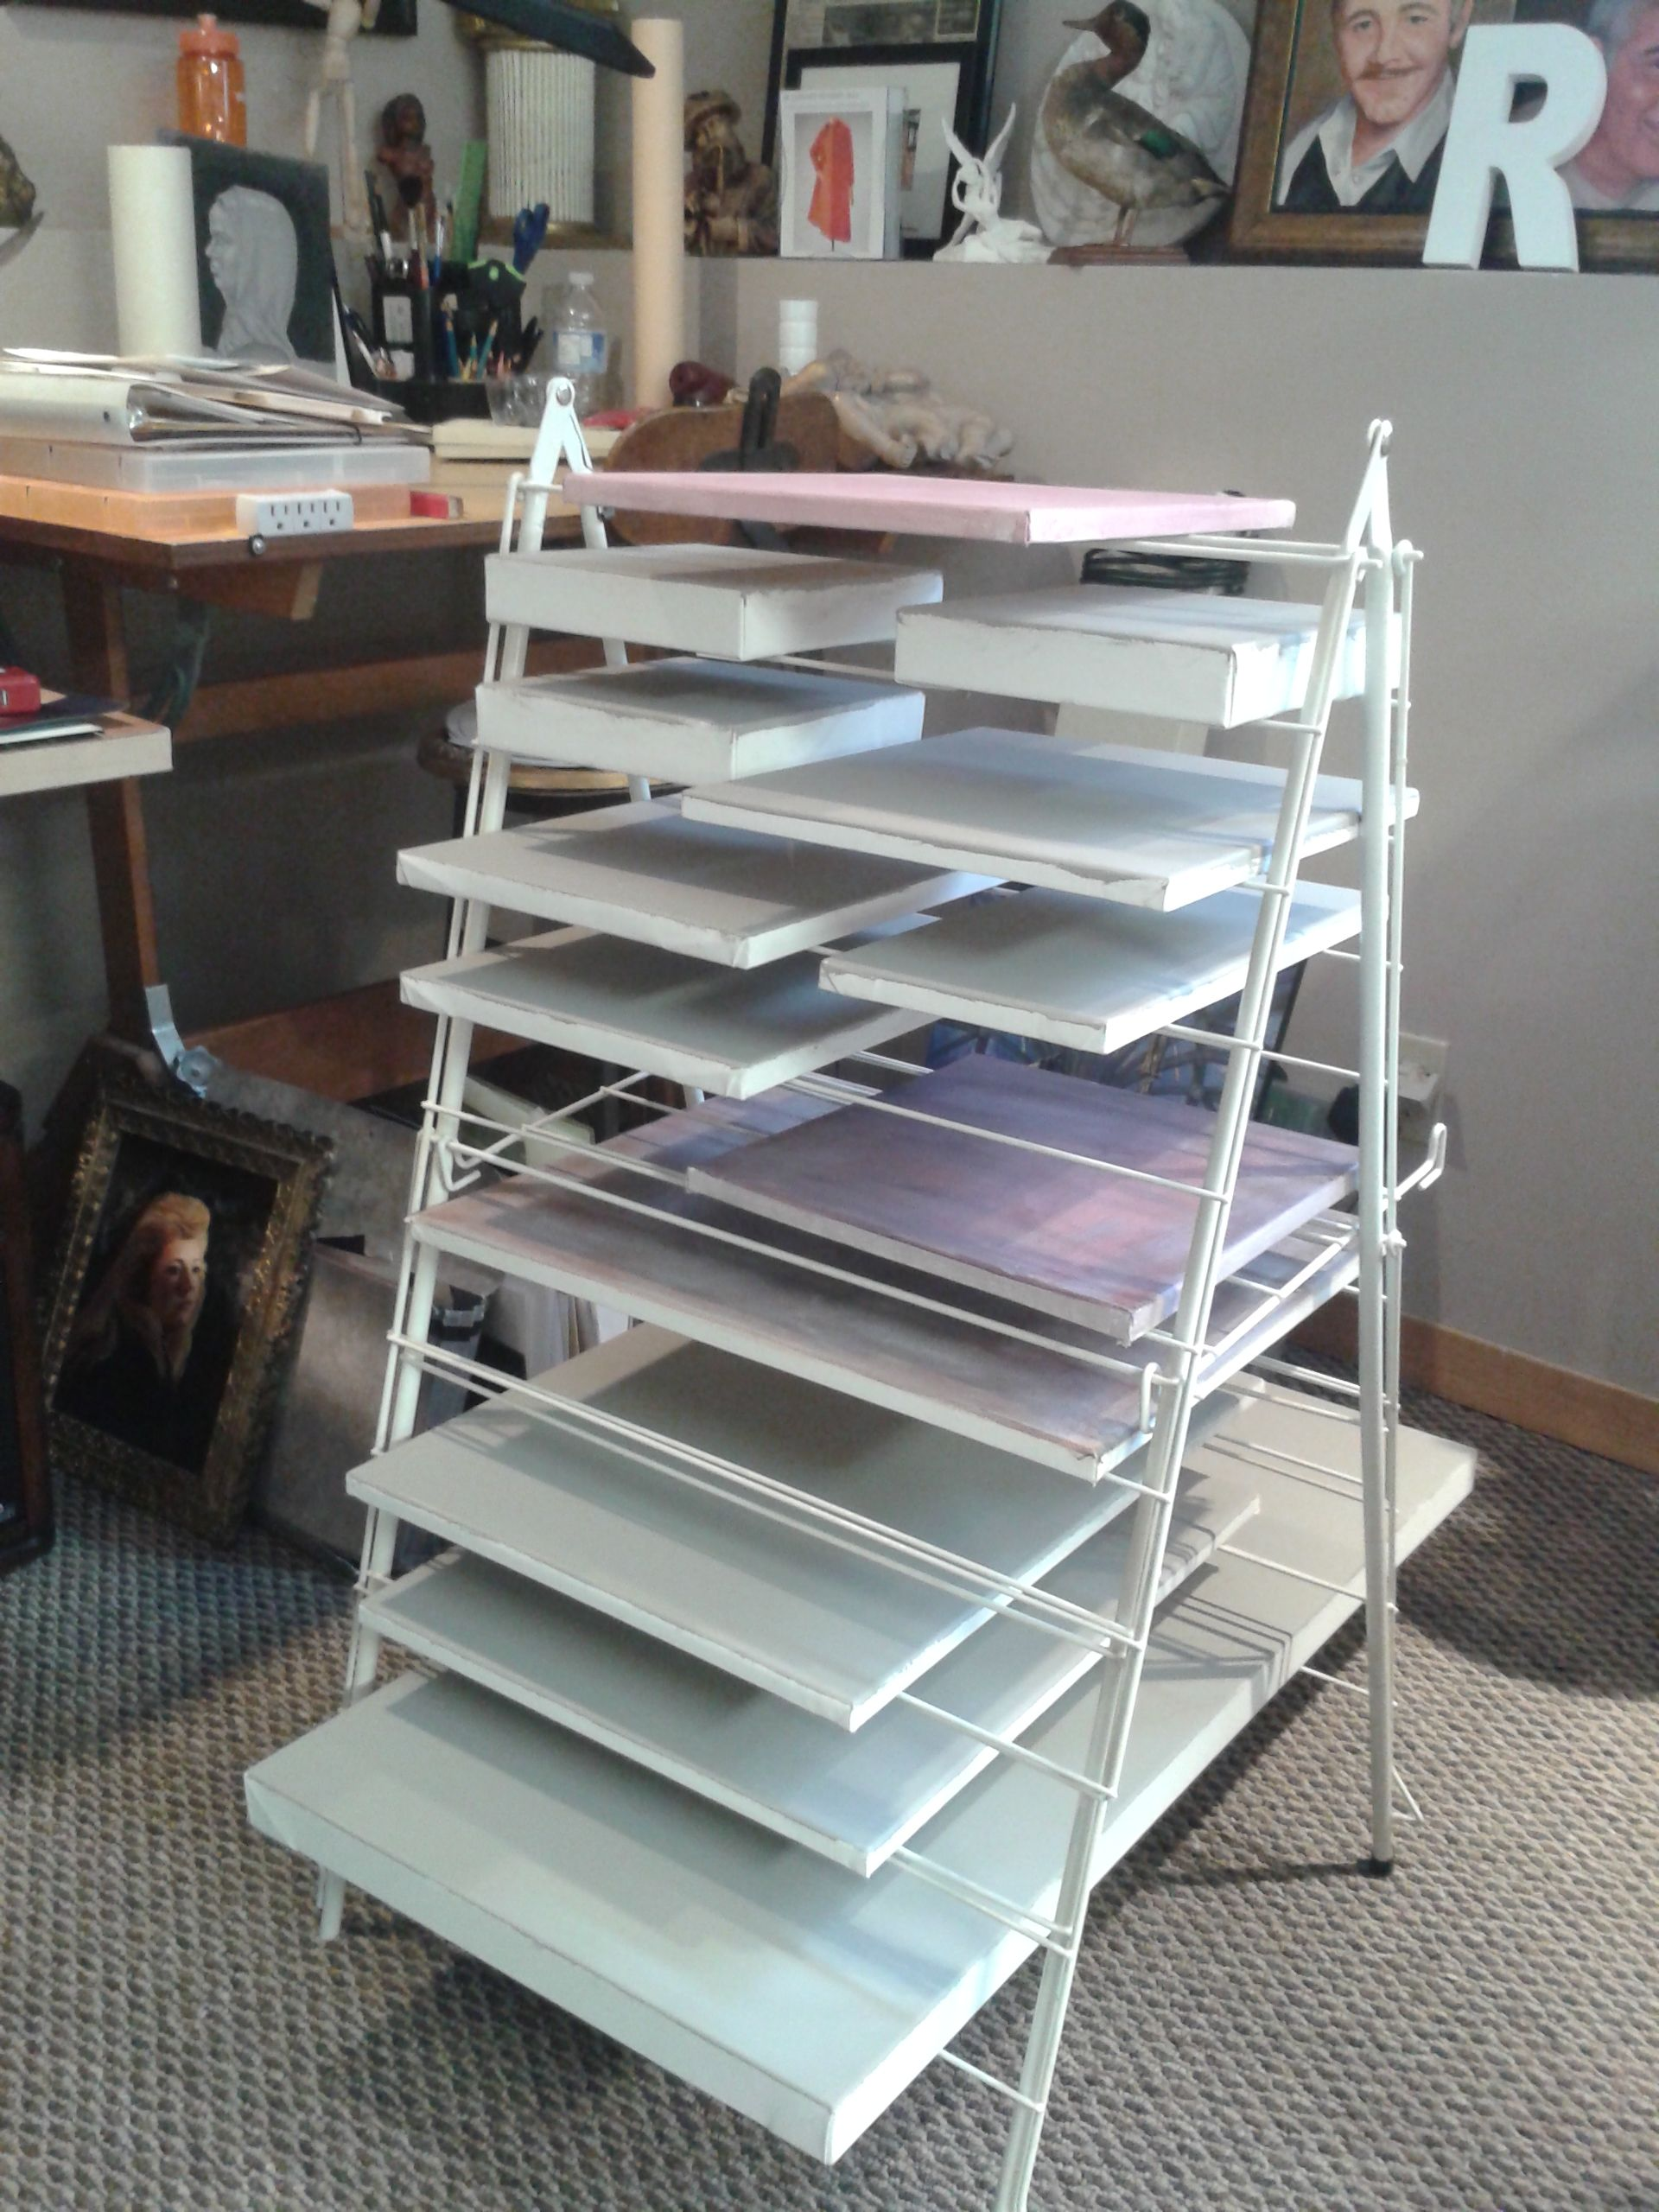 Use a clothes drying rack debb bates made this to dry your